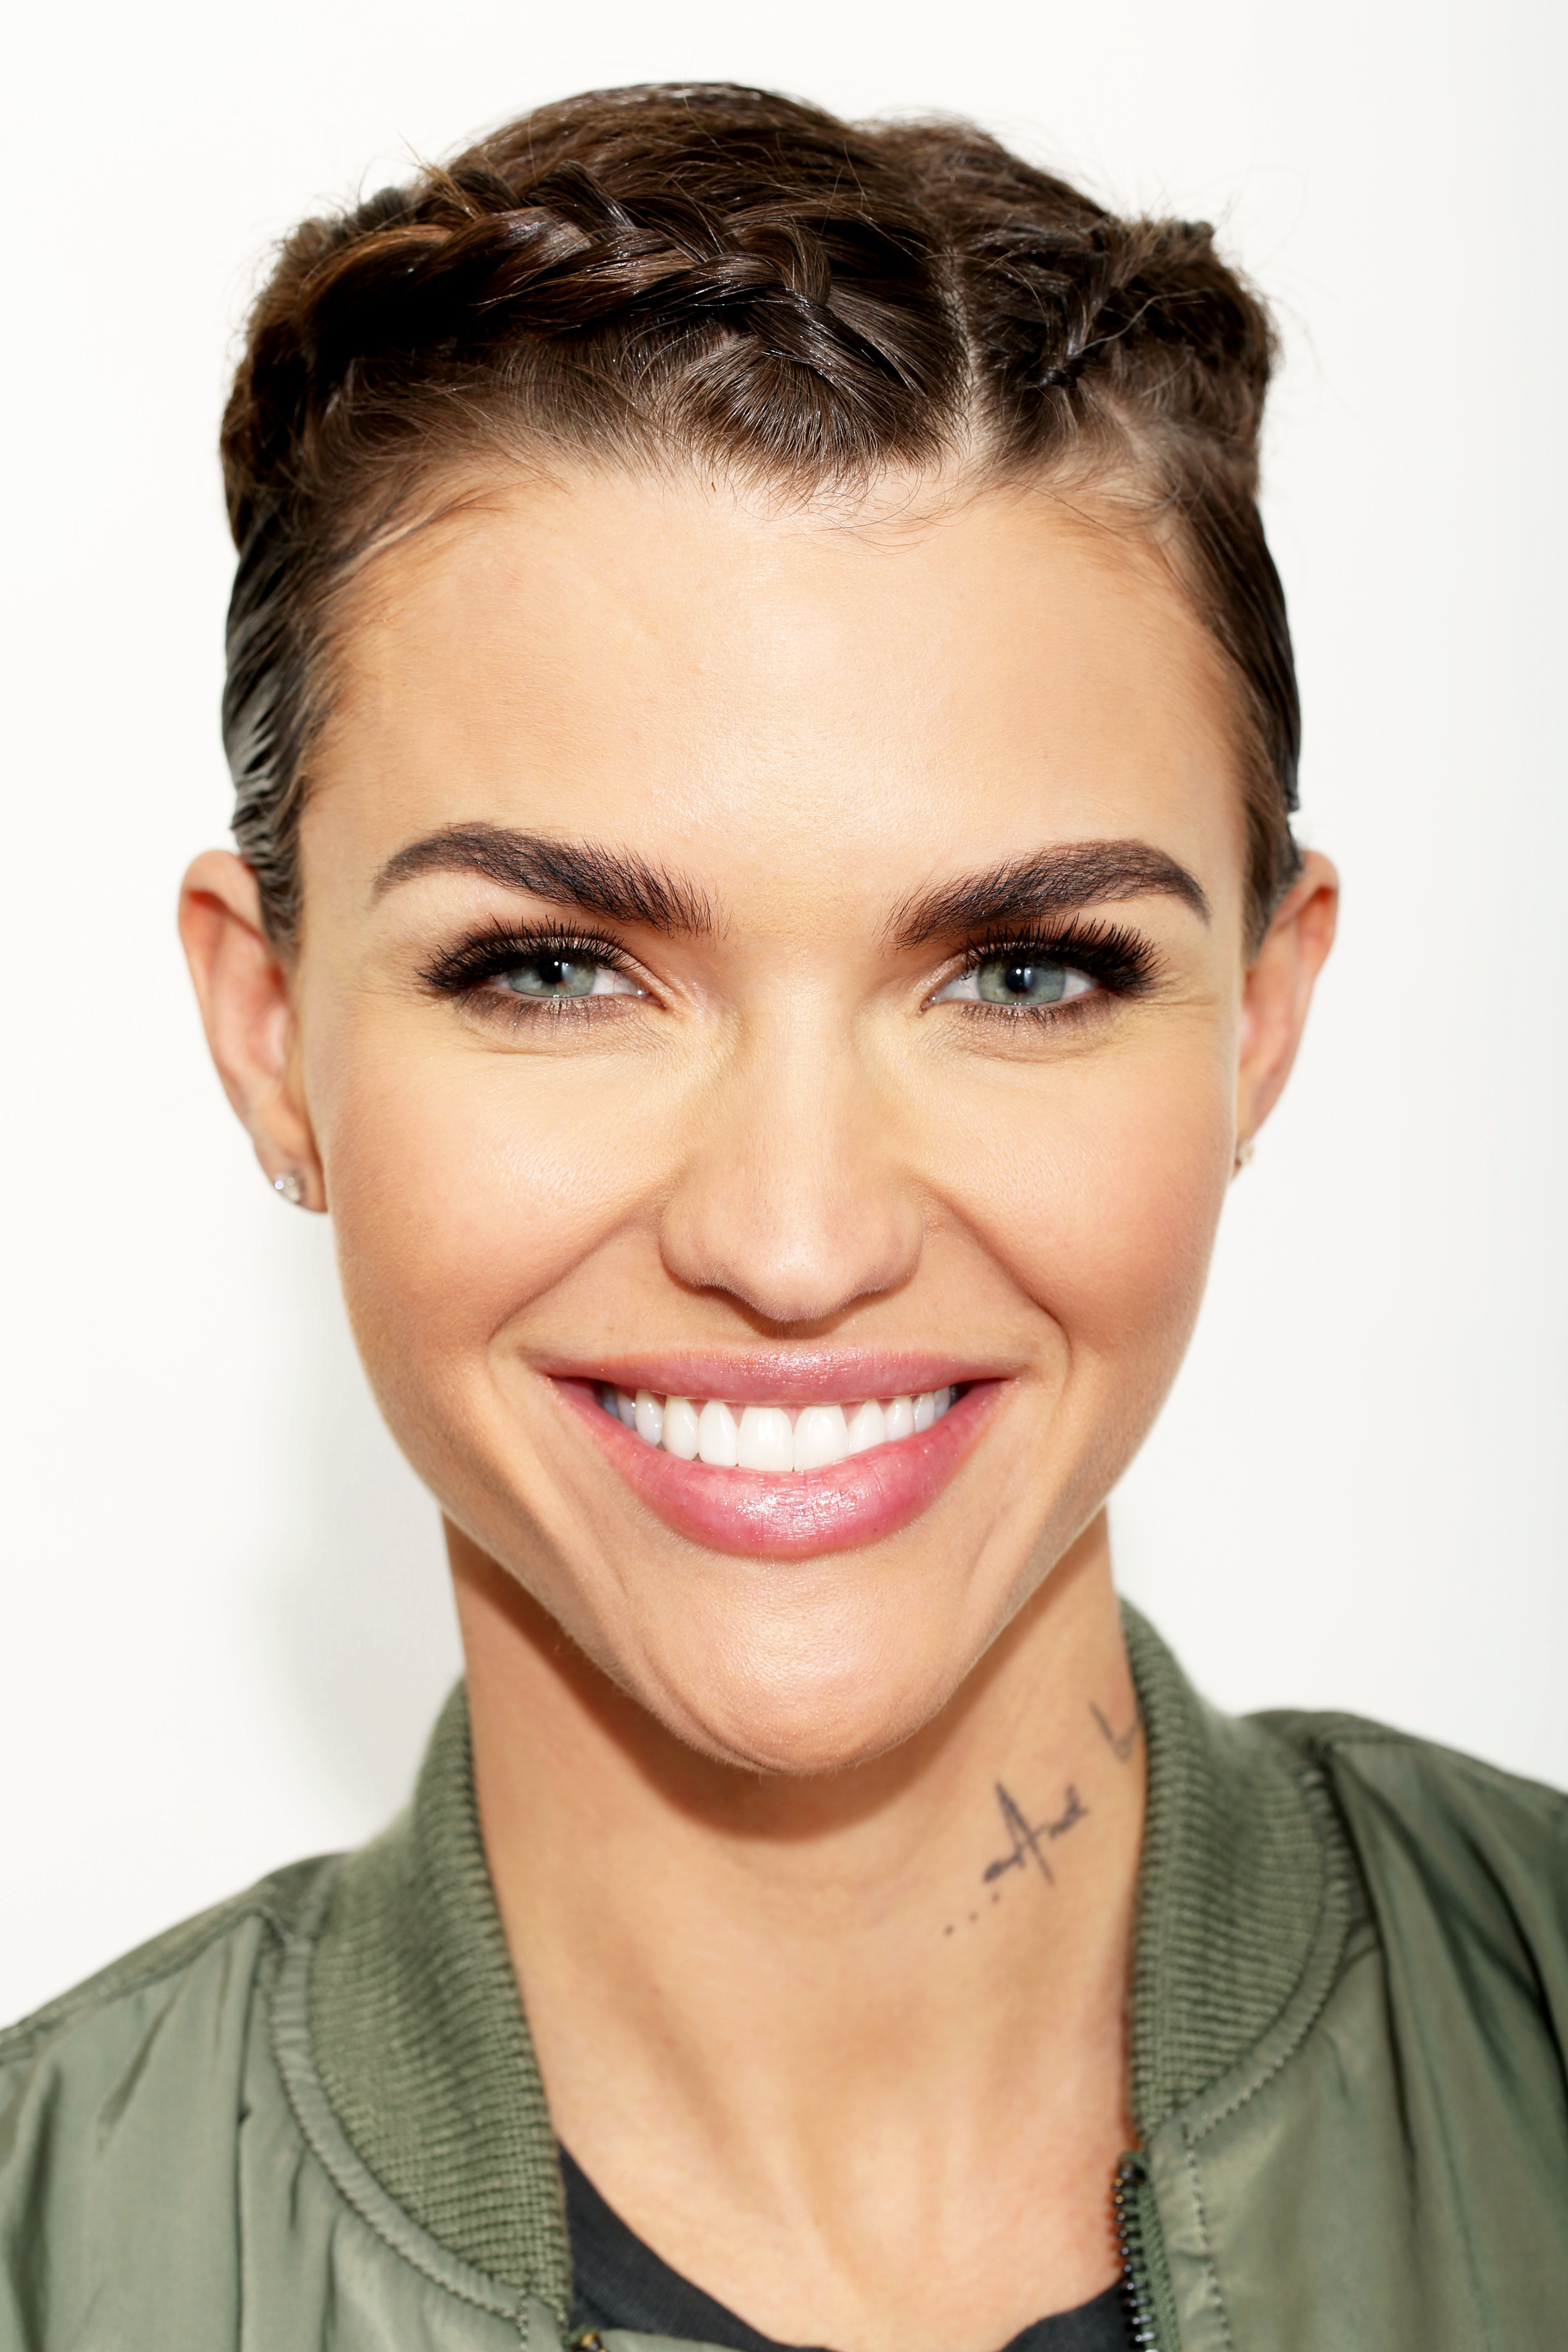 In this Tuesday, Jan. 5, 2016 photo, actress Ruby Rose poses for a portrait in Los Angeles.  (Photo by Matt Sayles/Invision/AP)